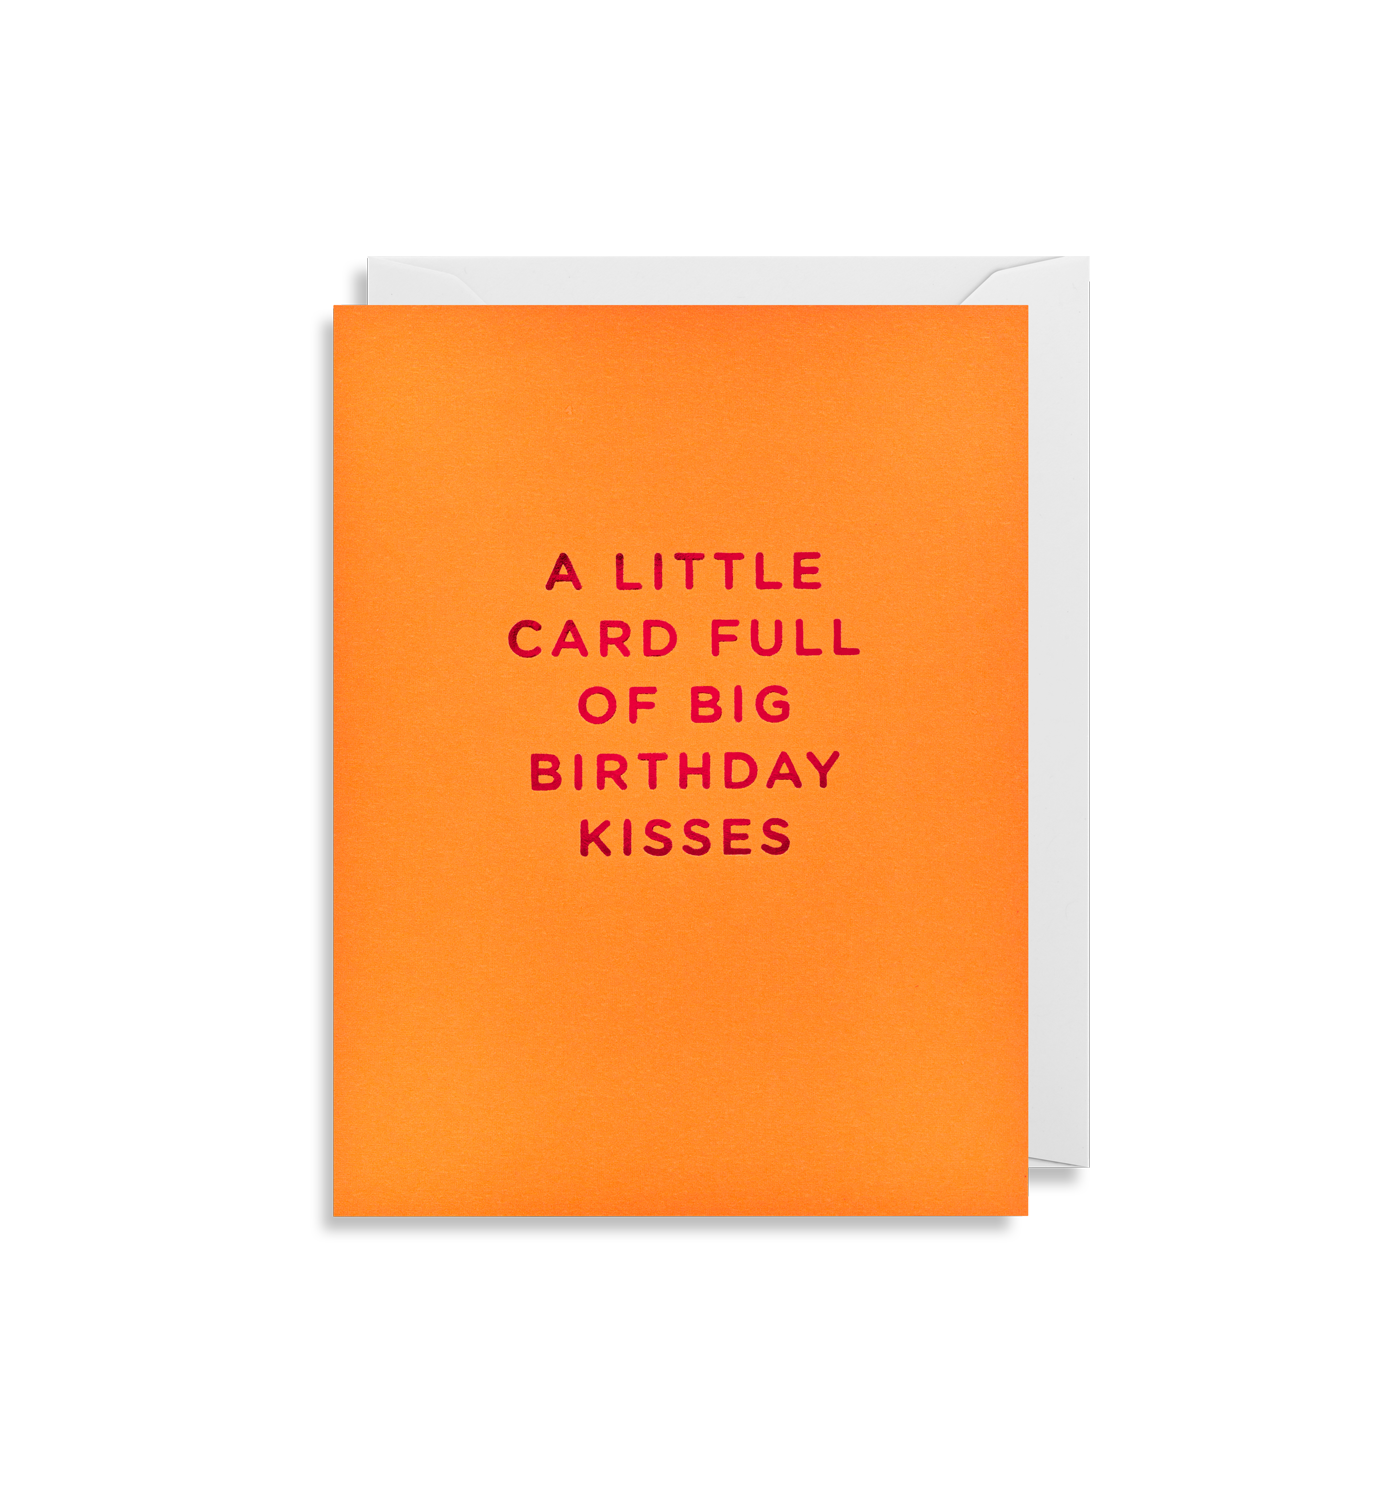 A Little Card Full of Big Birthday Kisses - Lagom Design